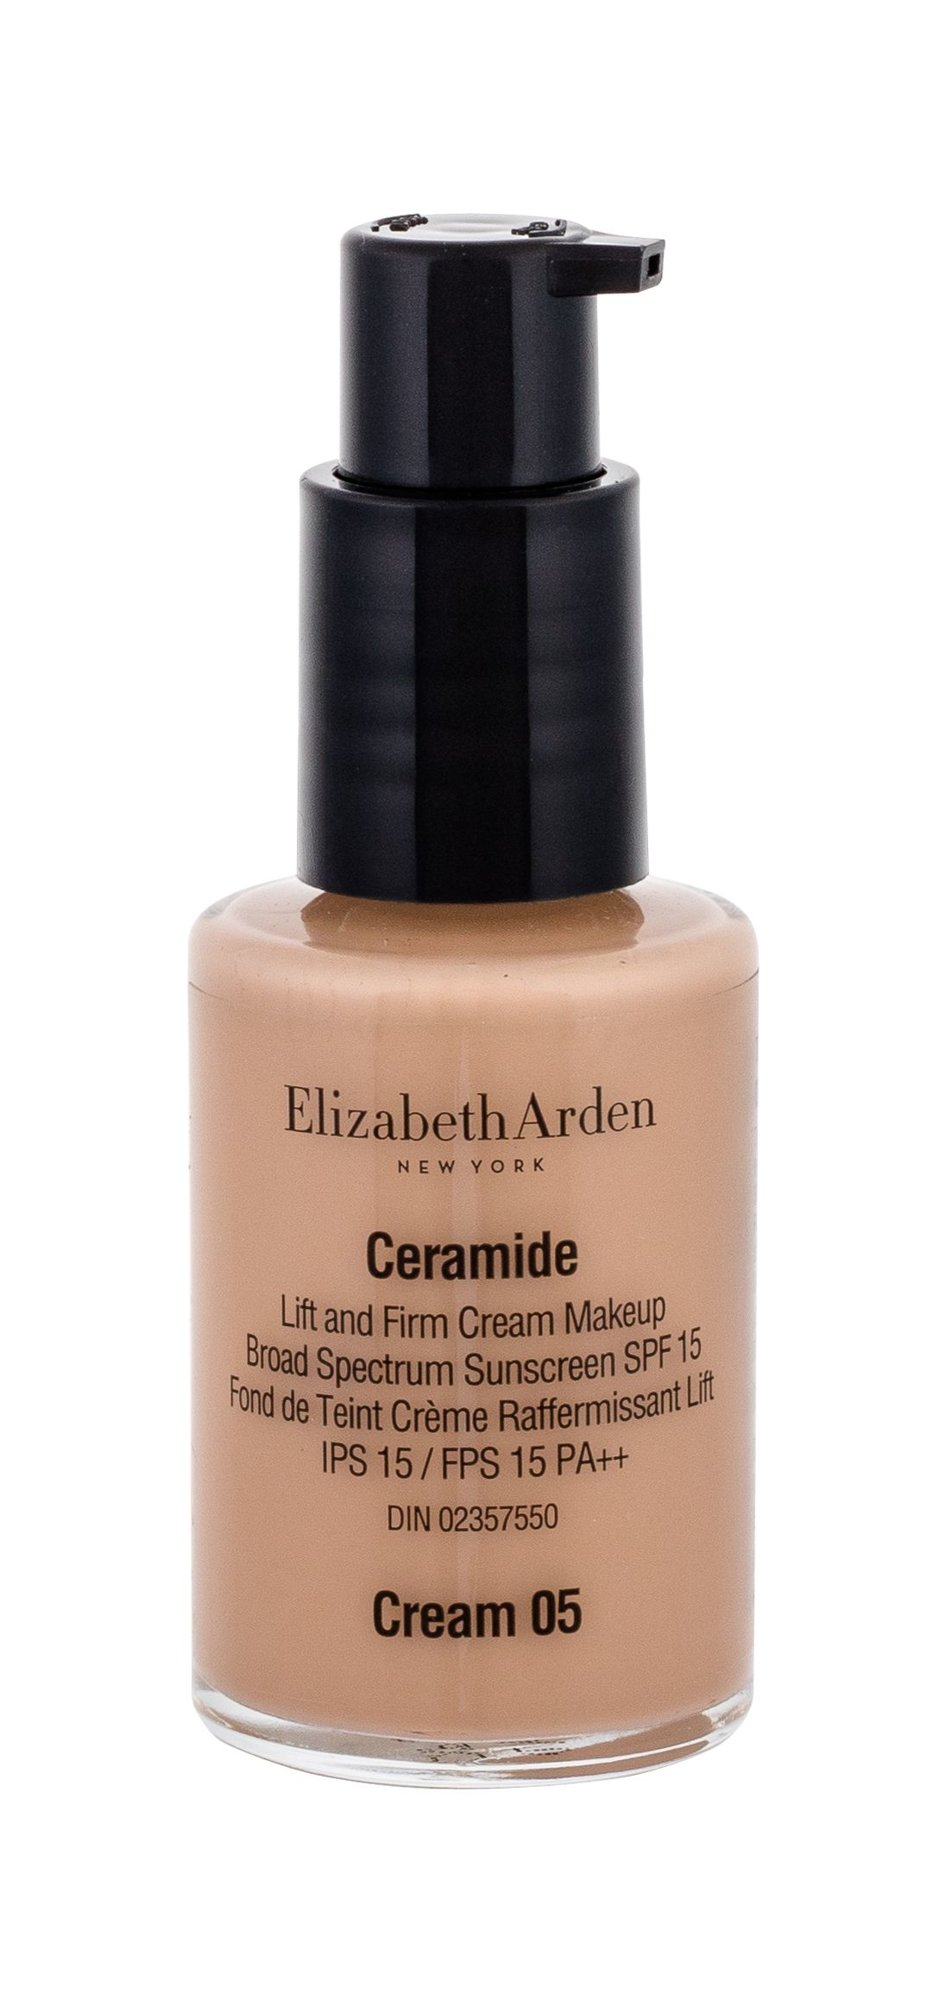 Elizabeth Arden Ceramide Makeup 30ml 05 Cream